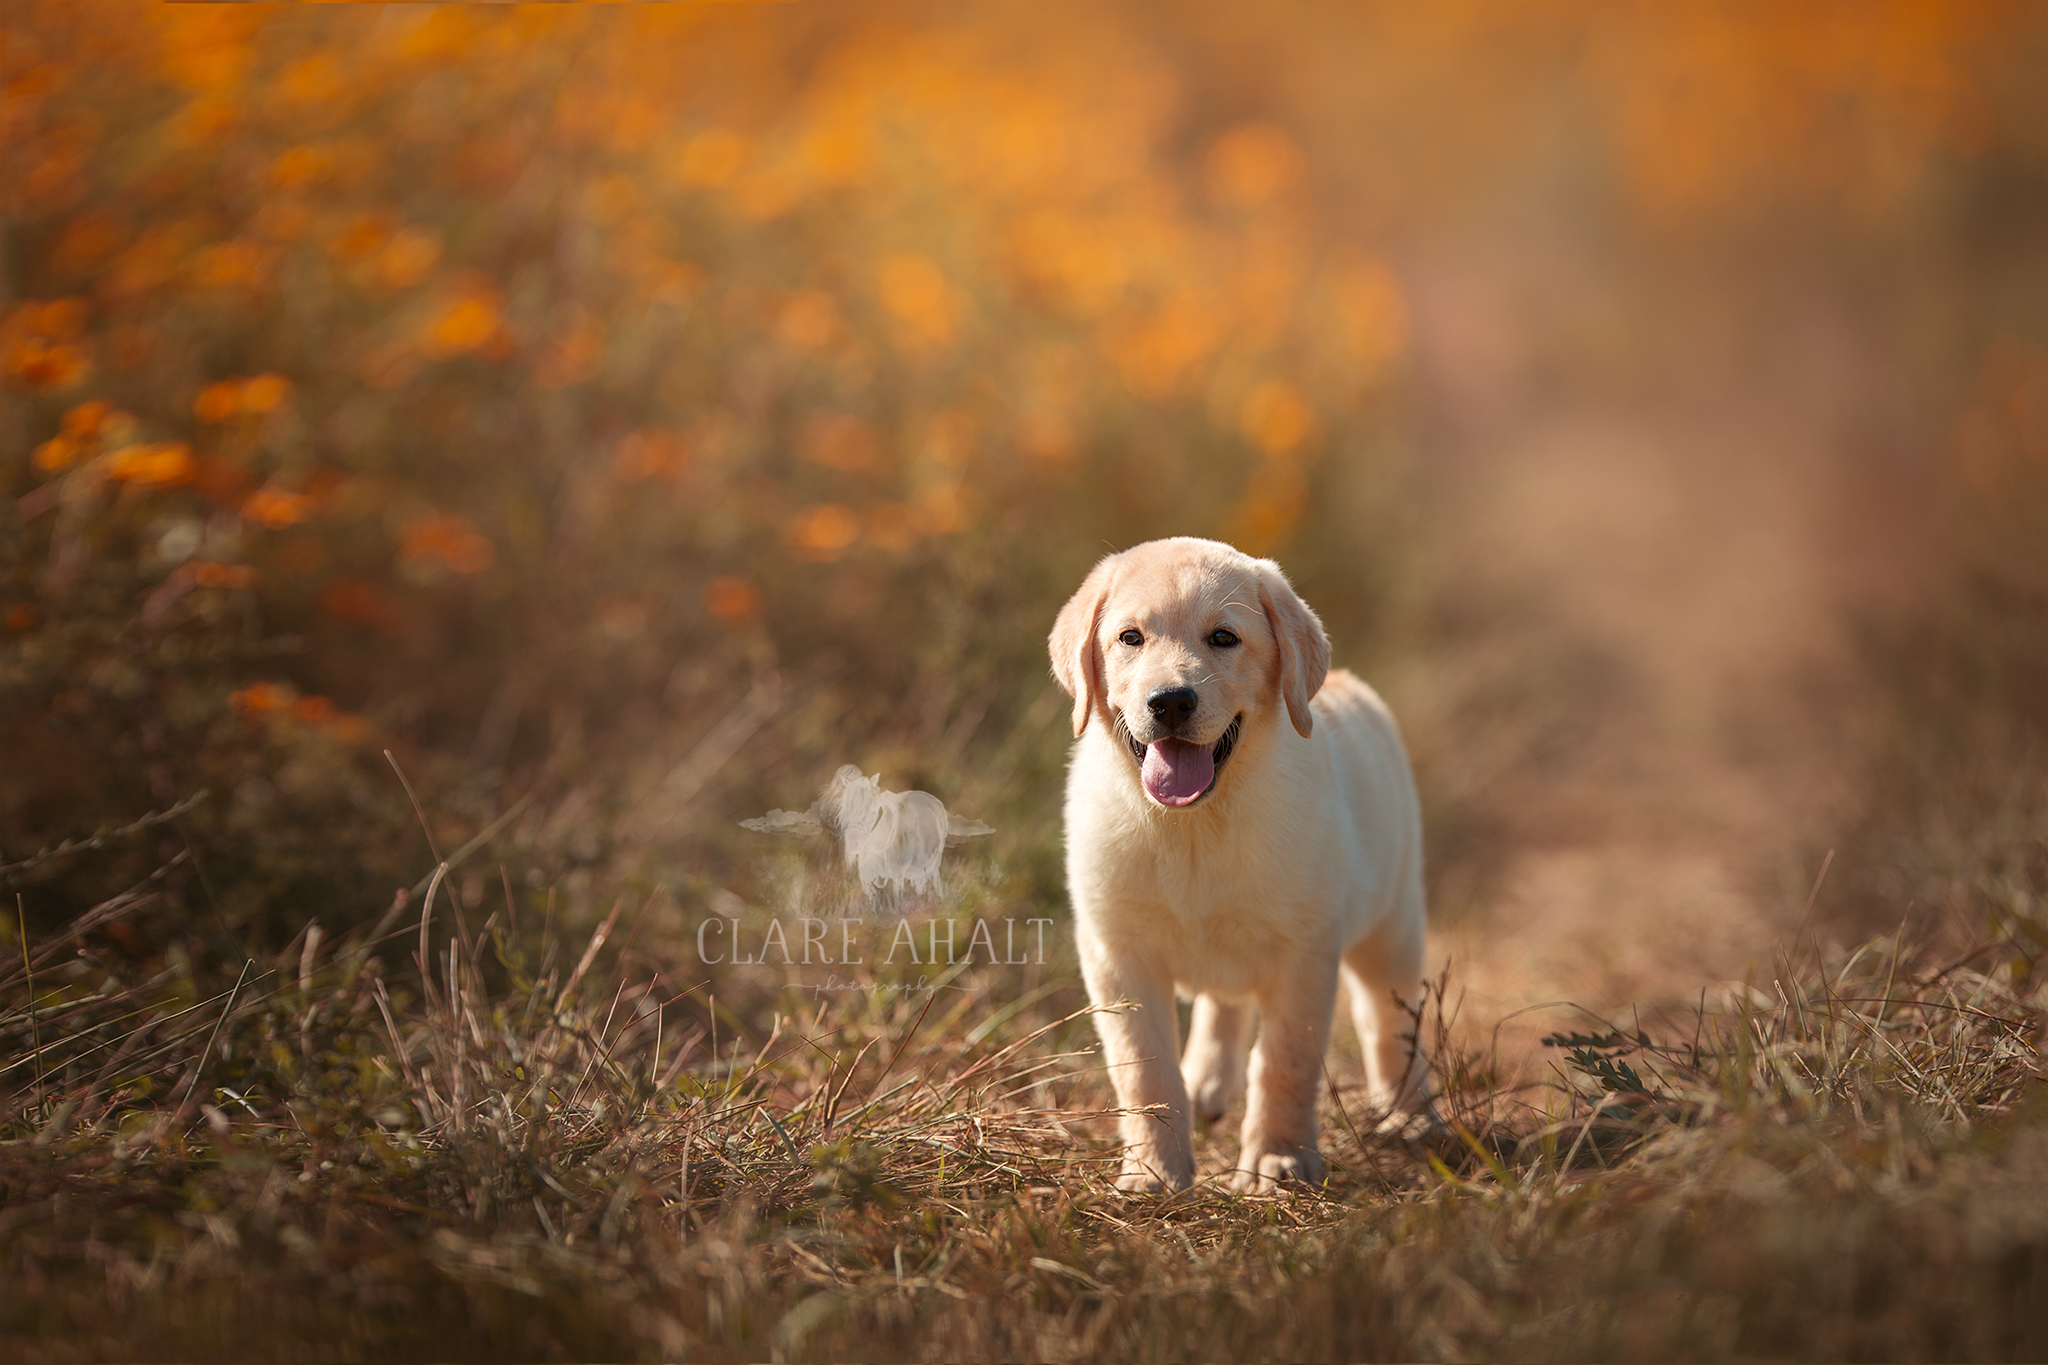 Pet portrait of a yellow lab dog photographed in Potomac MD by Clare Ahalt Photography, a fine art portrait photography located in Frederick MD